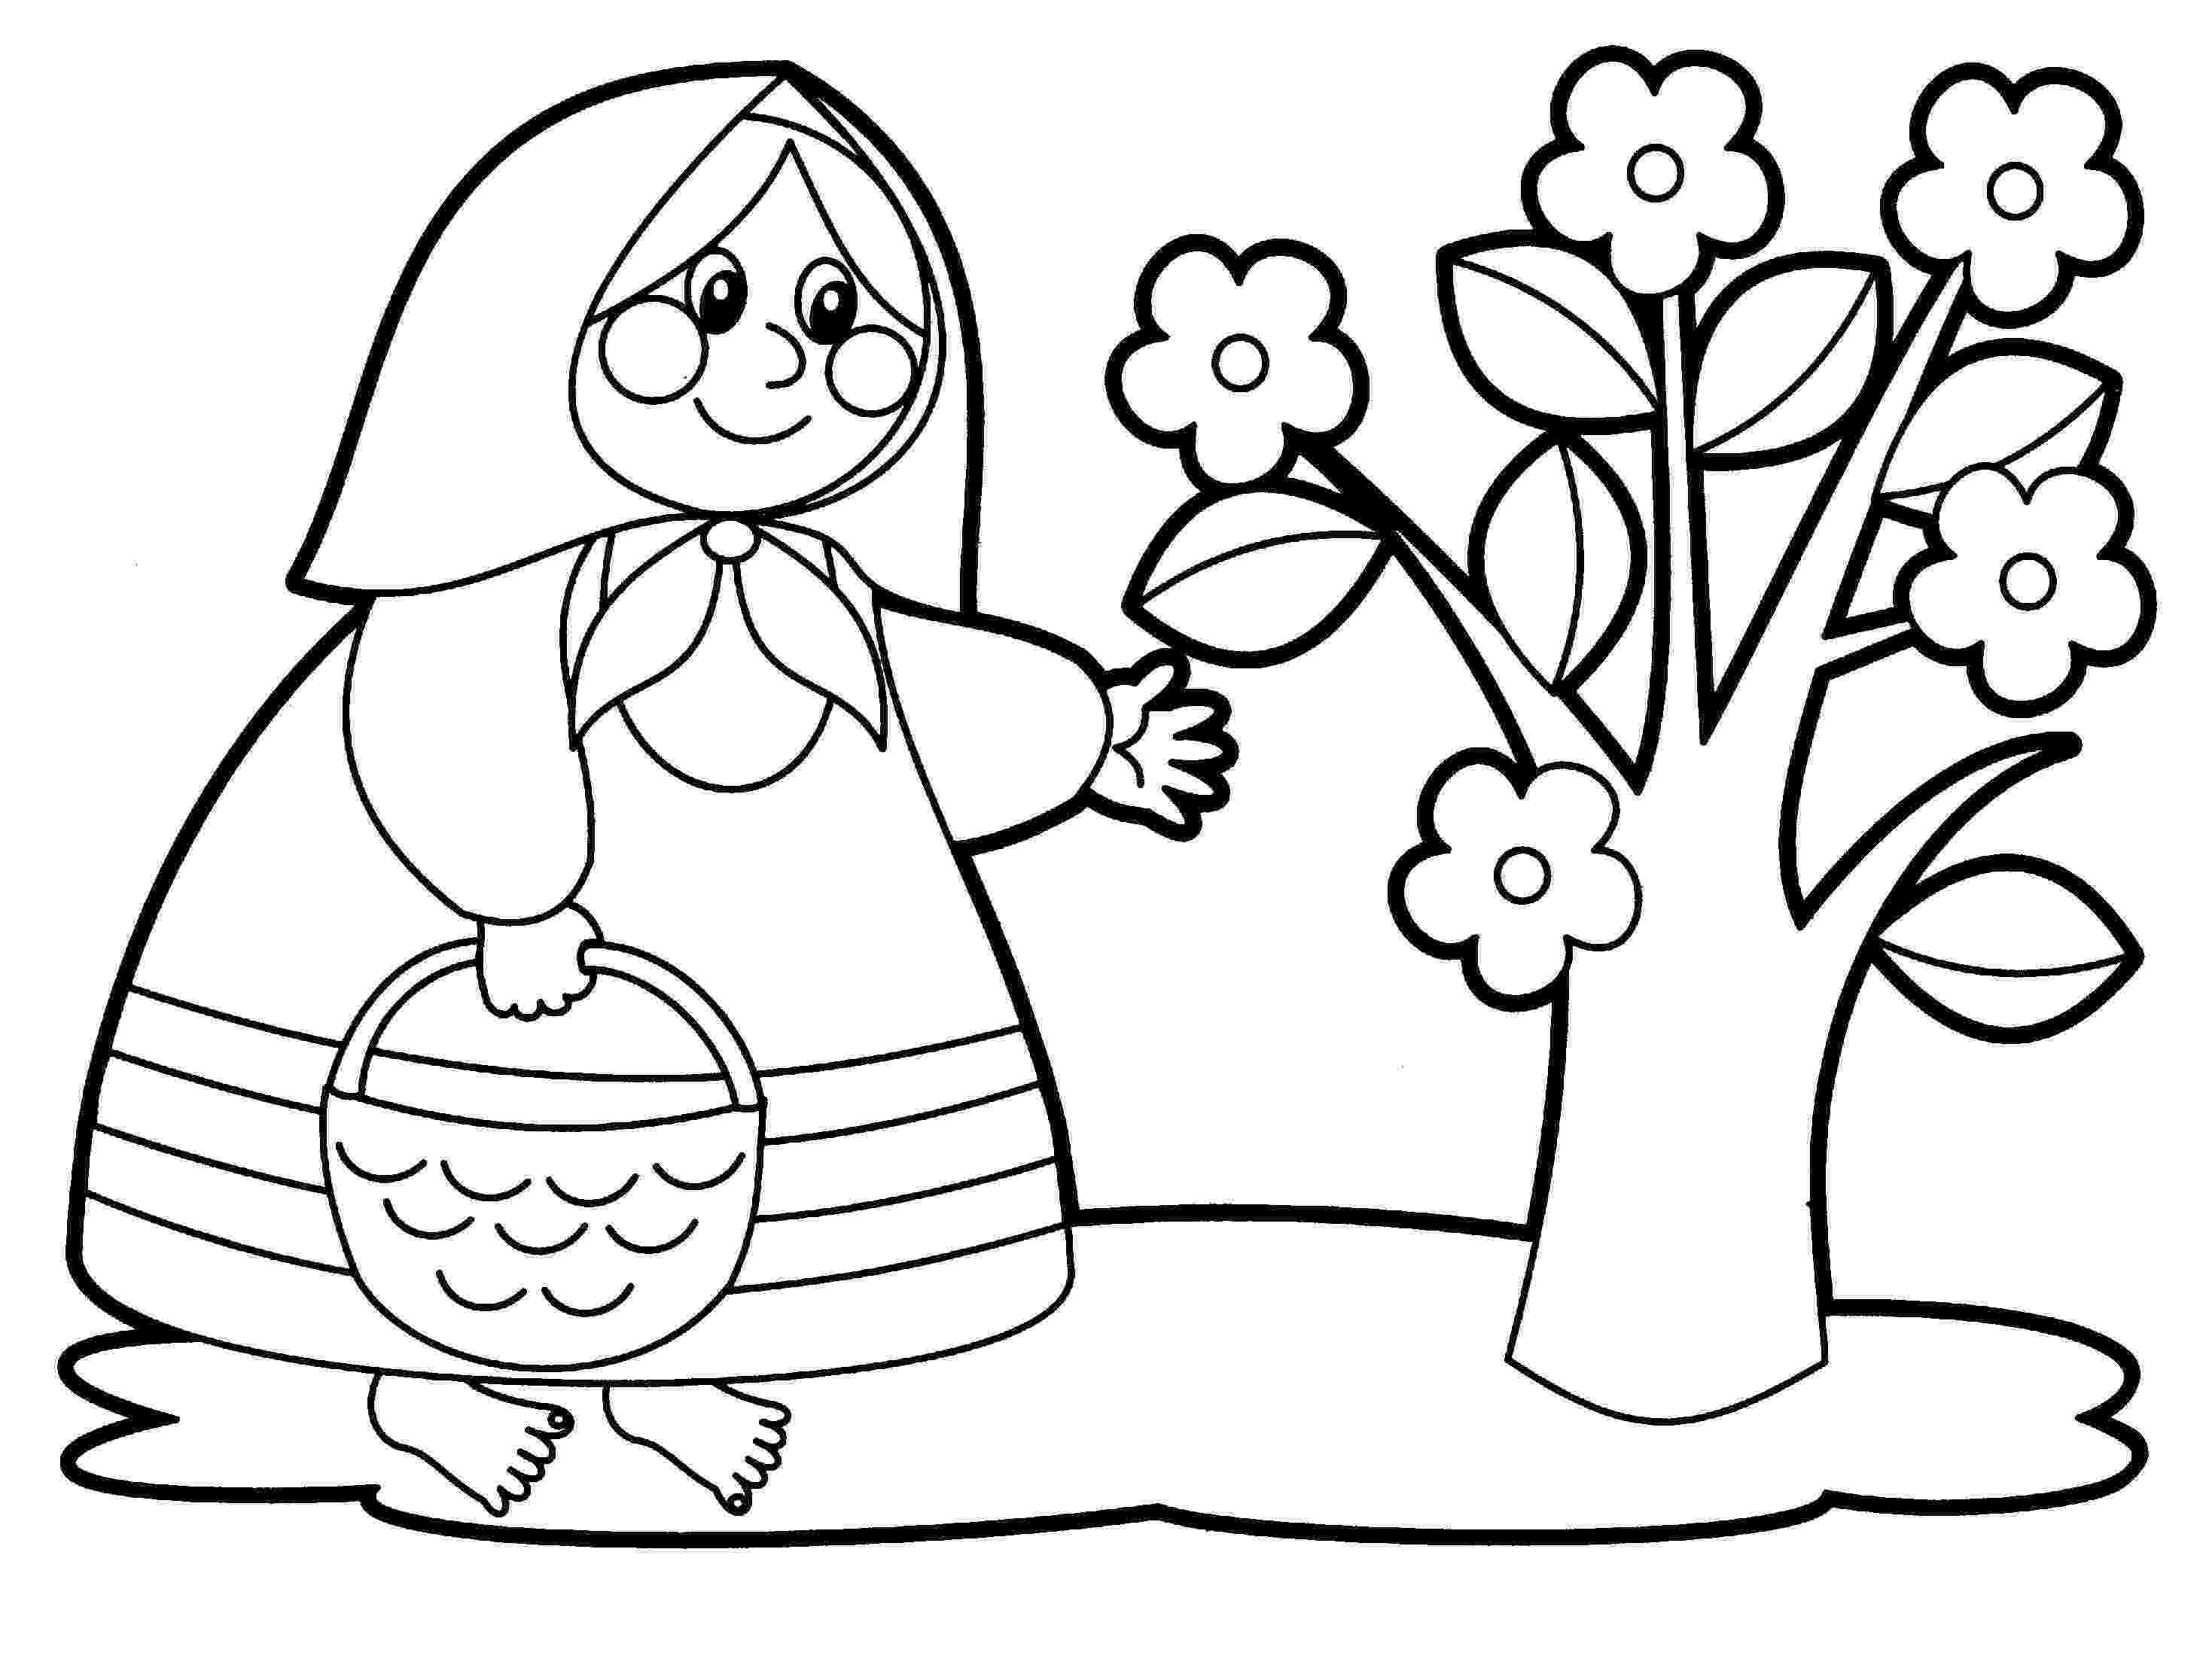 free printable coloring pages for children free printable flower coloring pages for kids best coloring pages for children printable free